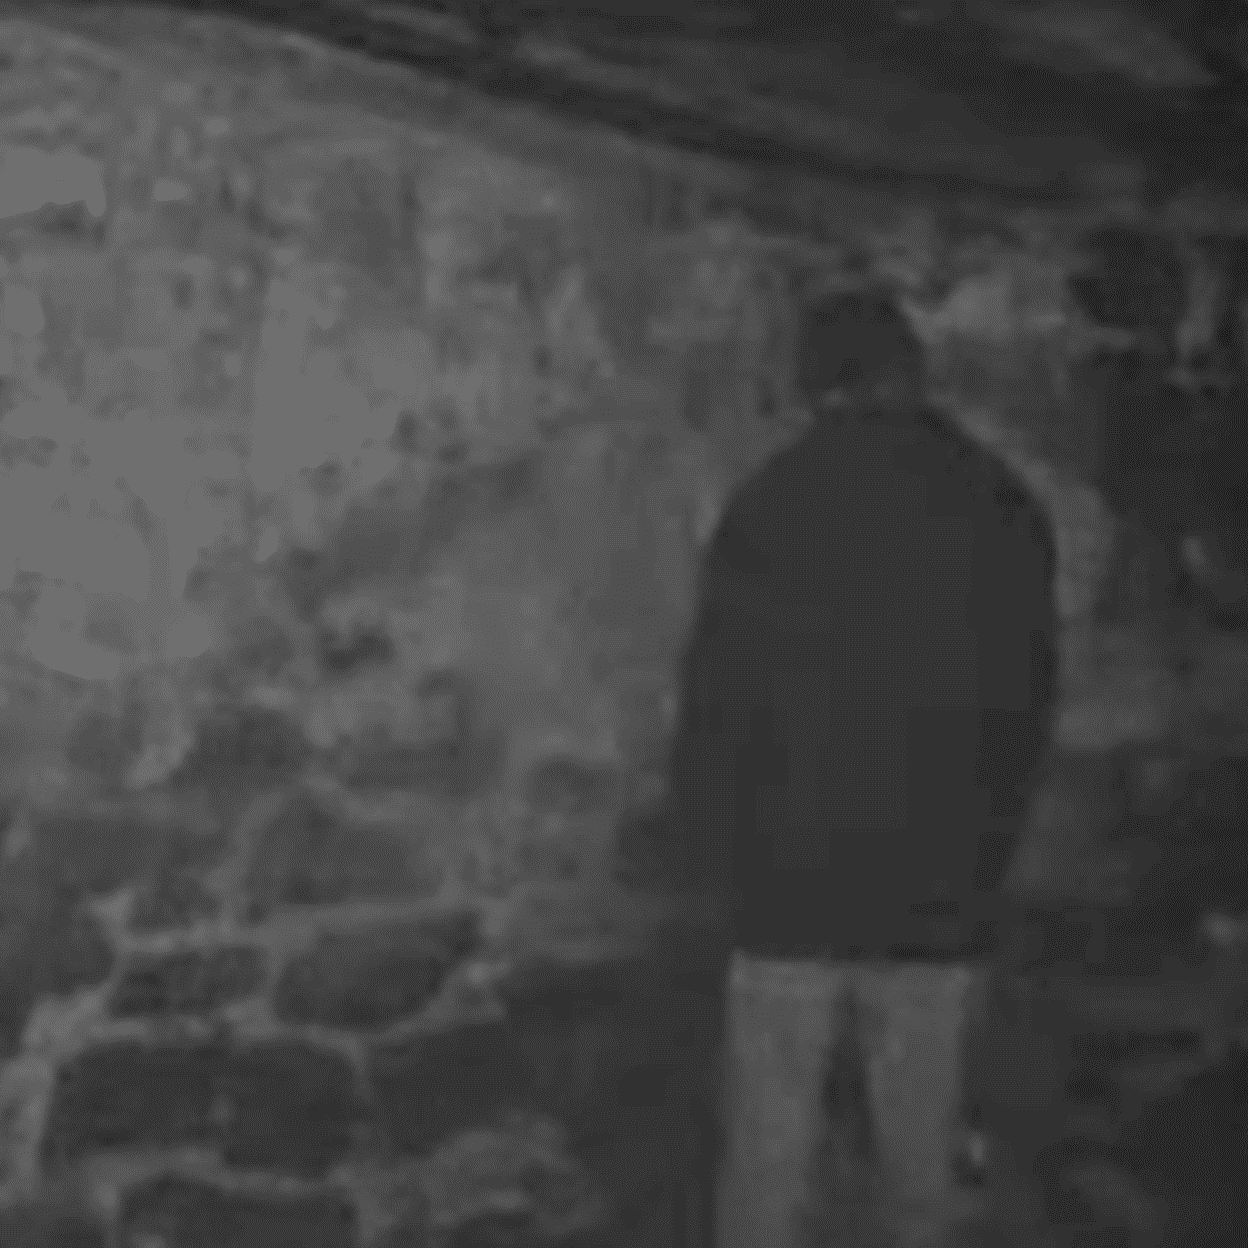 primary 387 e1572002661709 The Blair Witch Project: 20 Behind-The-Scenes Nuggets That Made It The Most Successful Film Ever